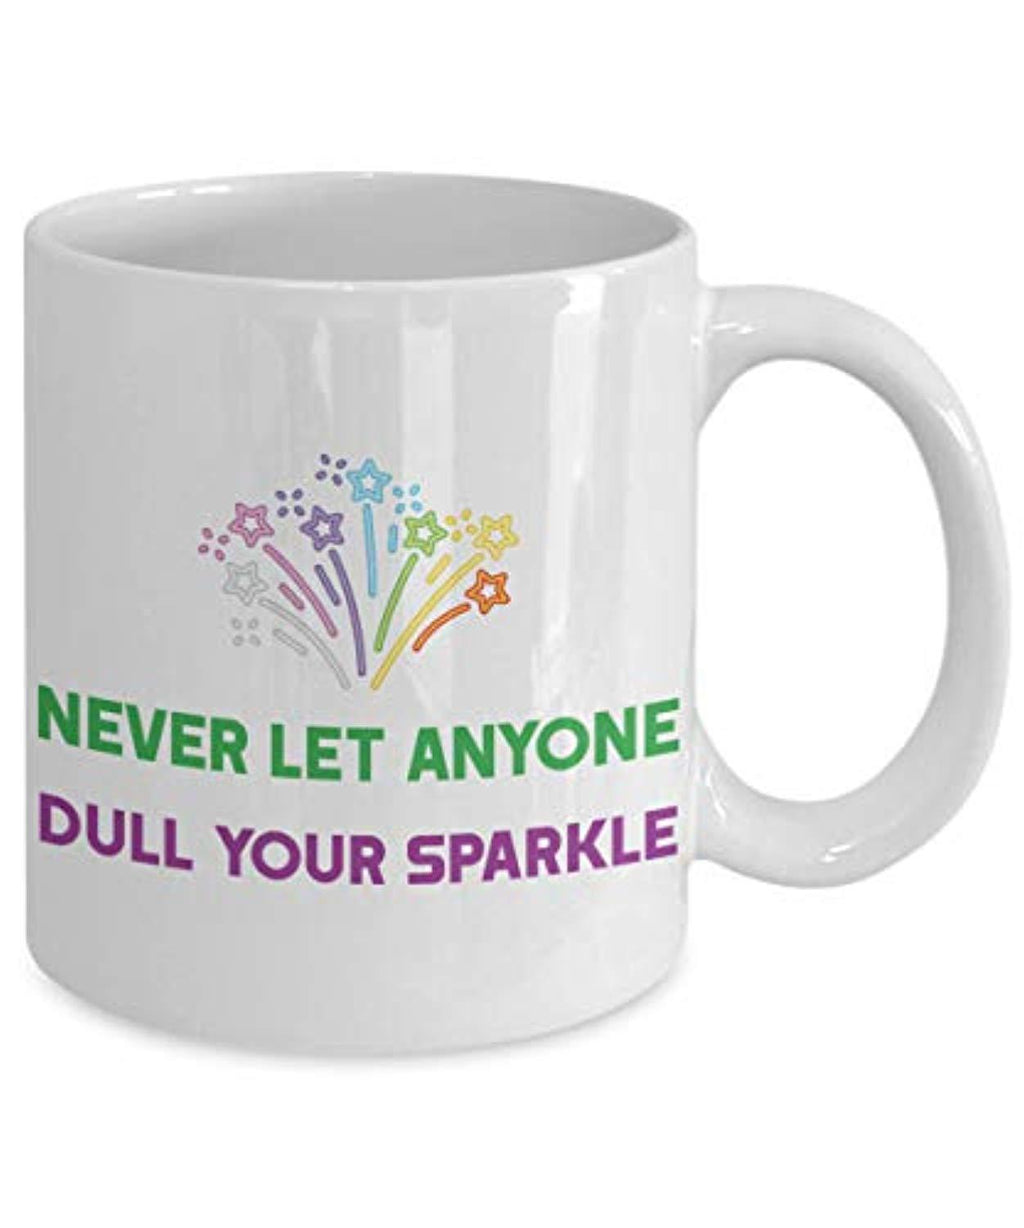 Never Let Anyone Dull Your Sparkle mug